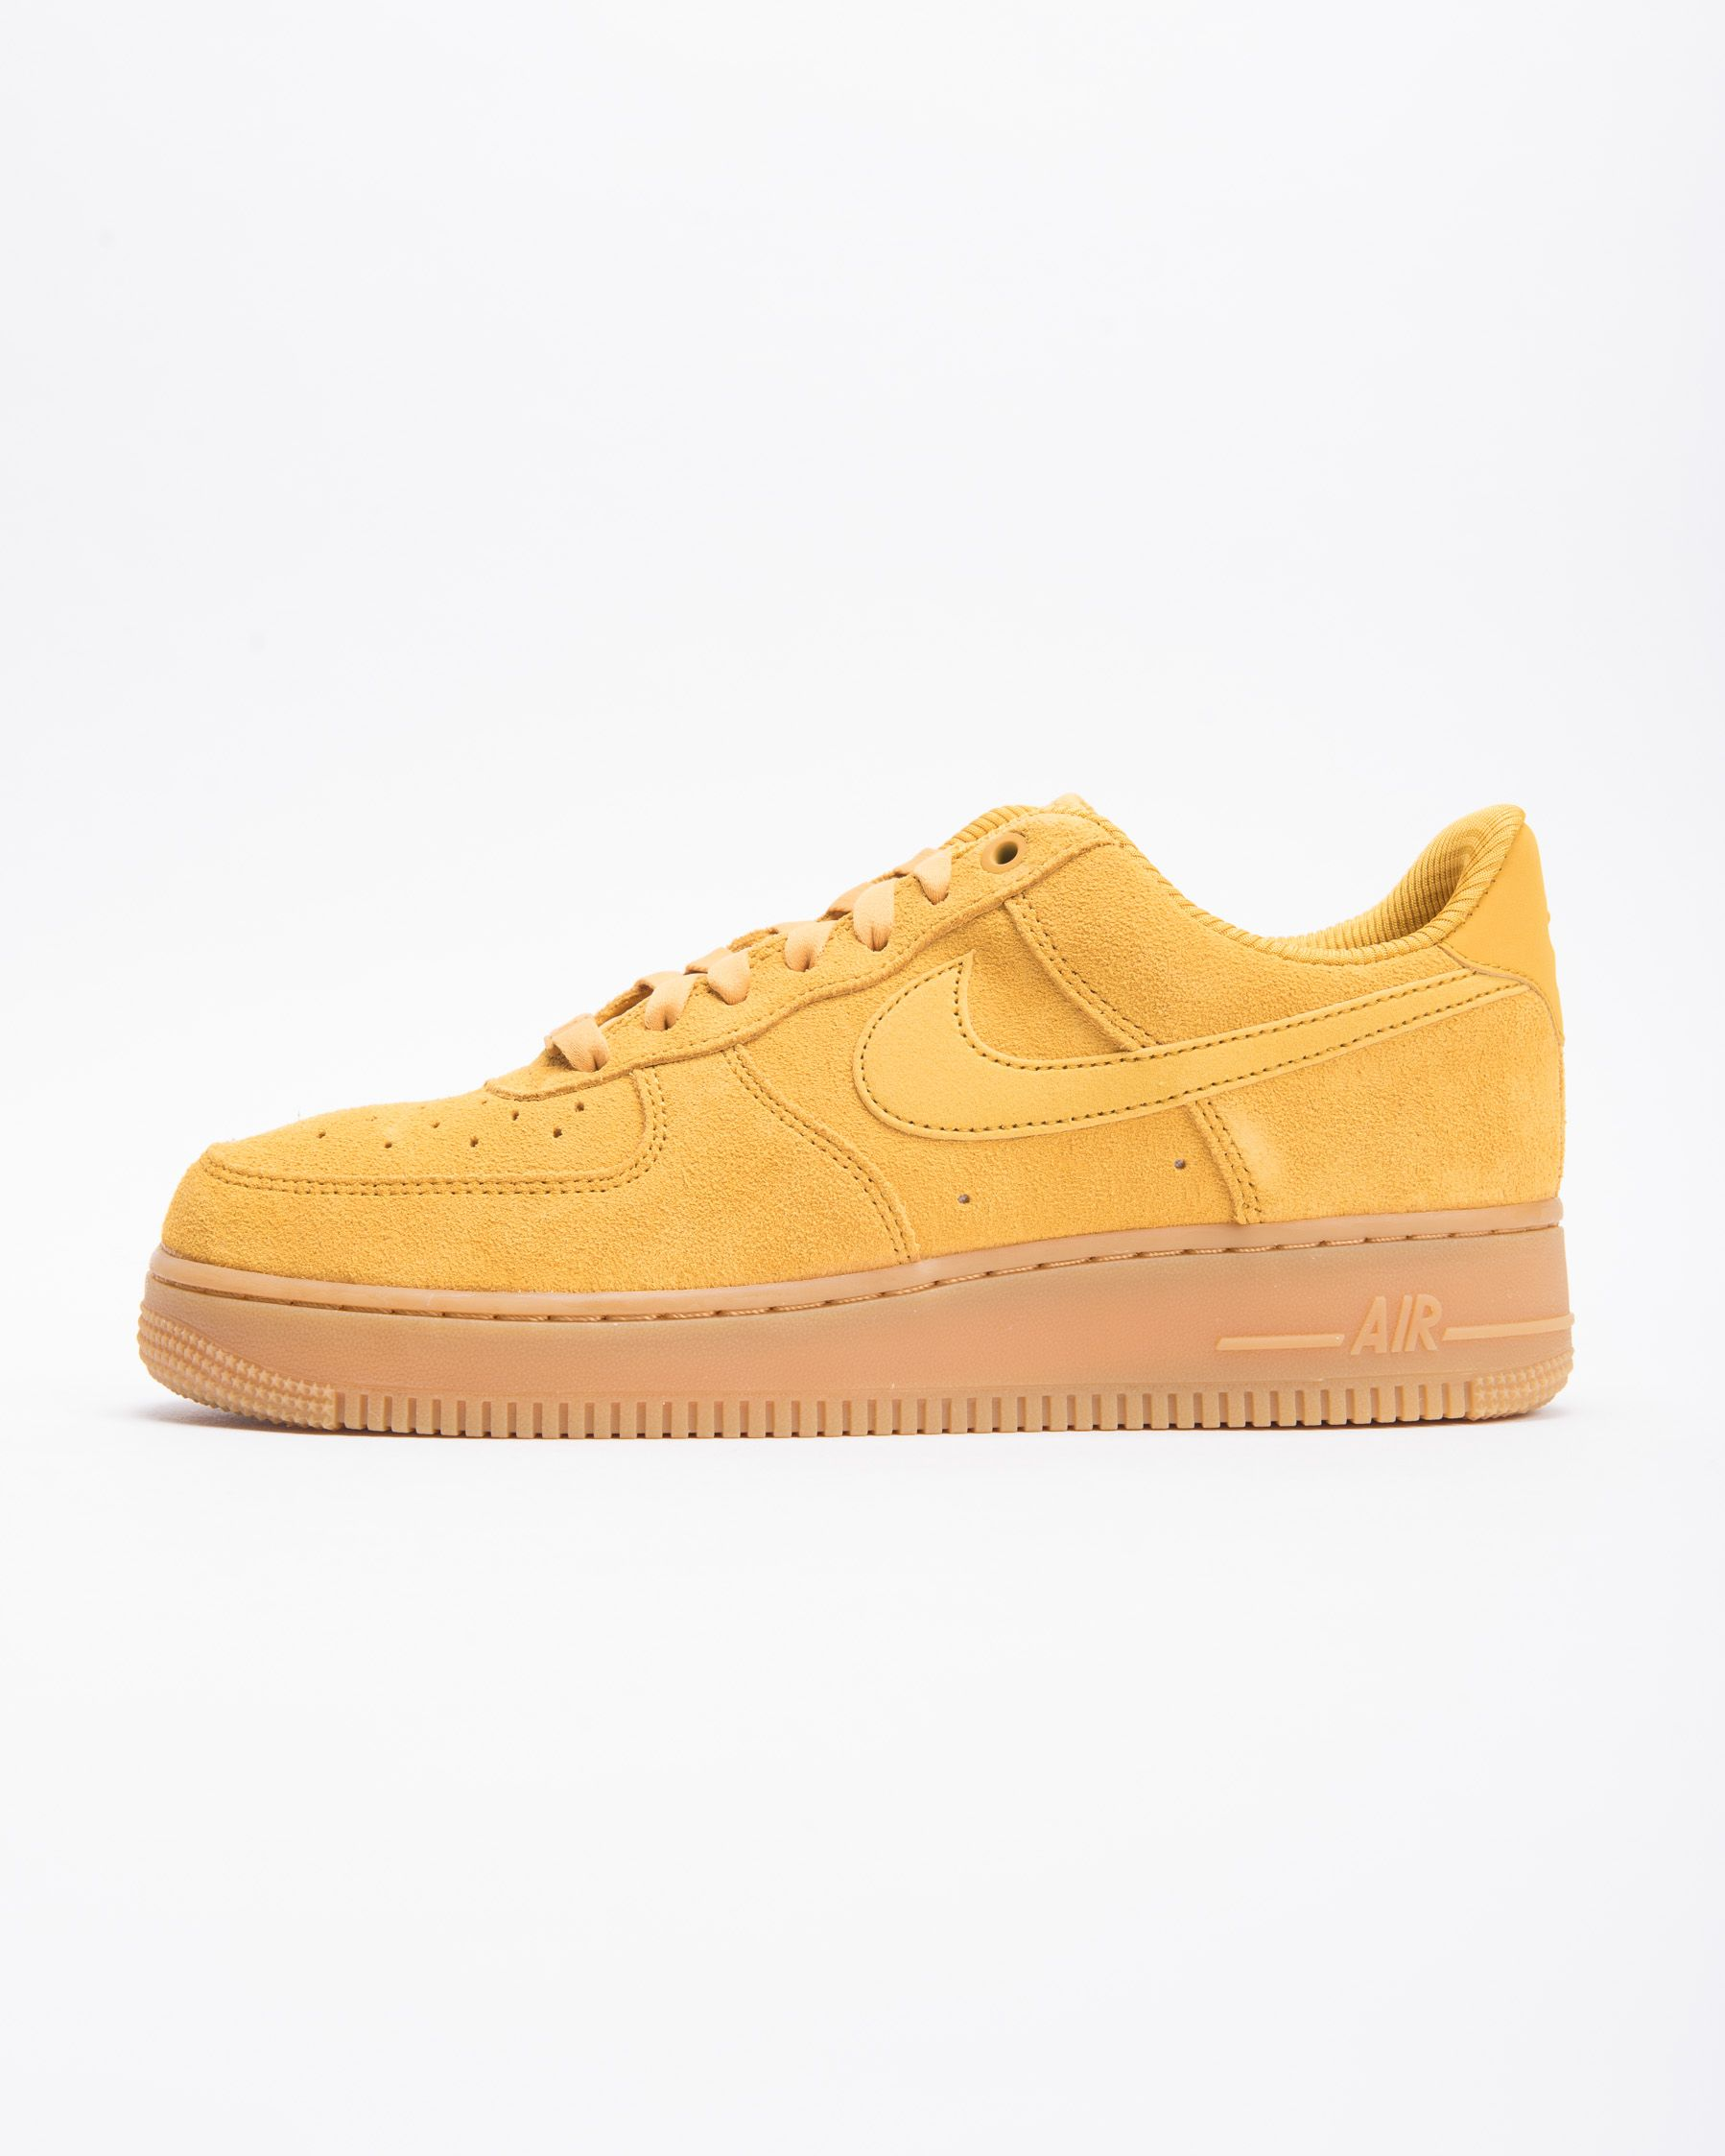 WMNS AIR FORCE 1 07 SE | Sneakers to buy | Air force 1